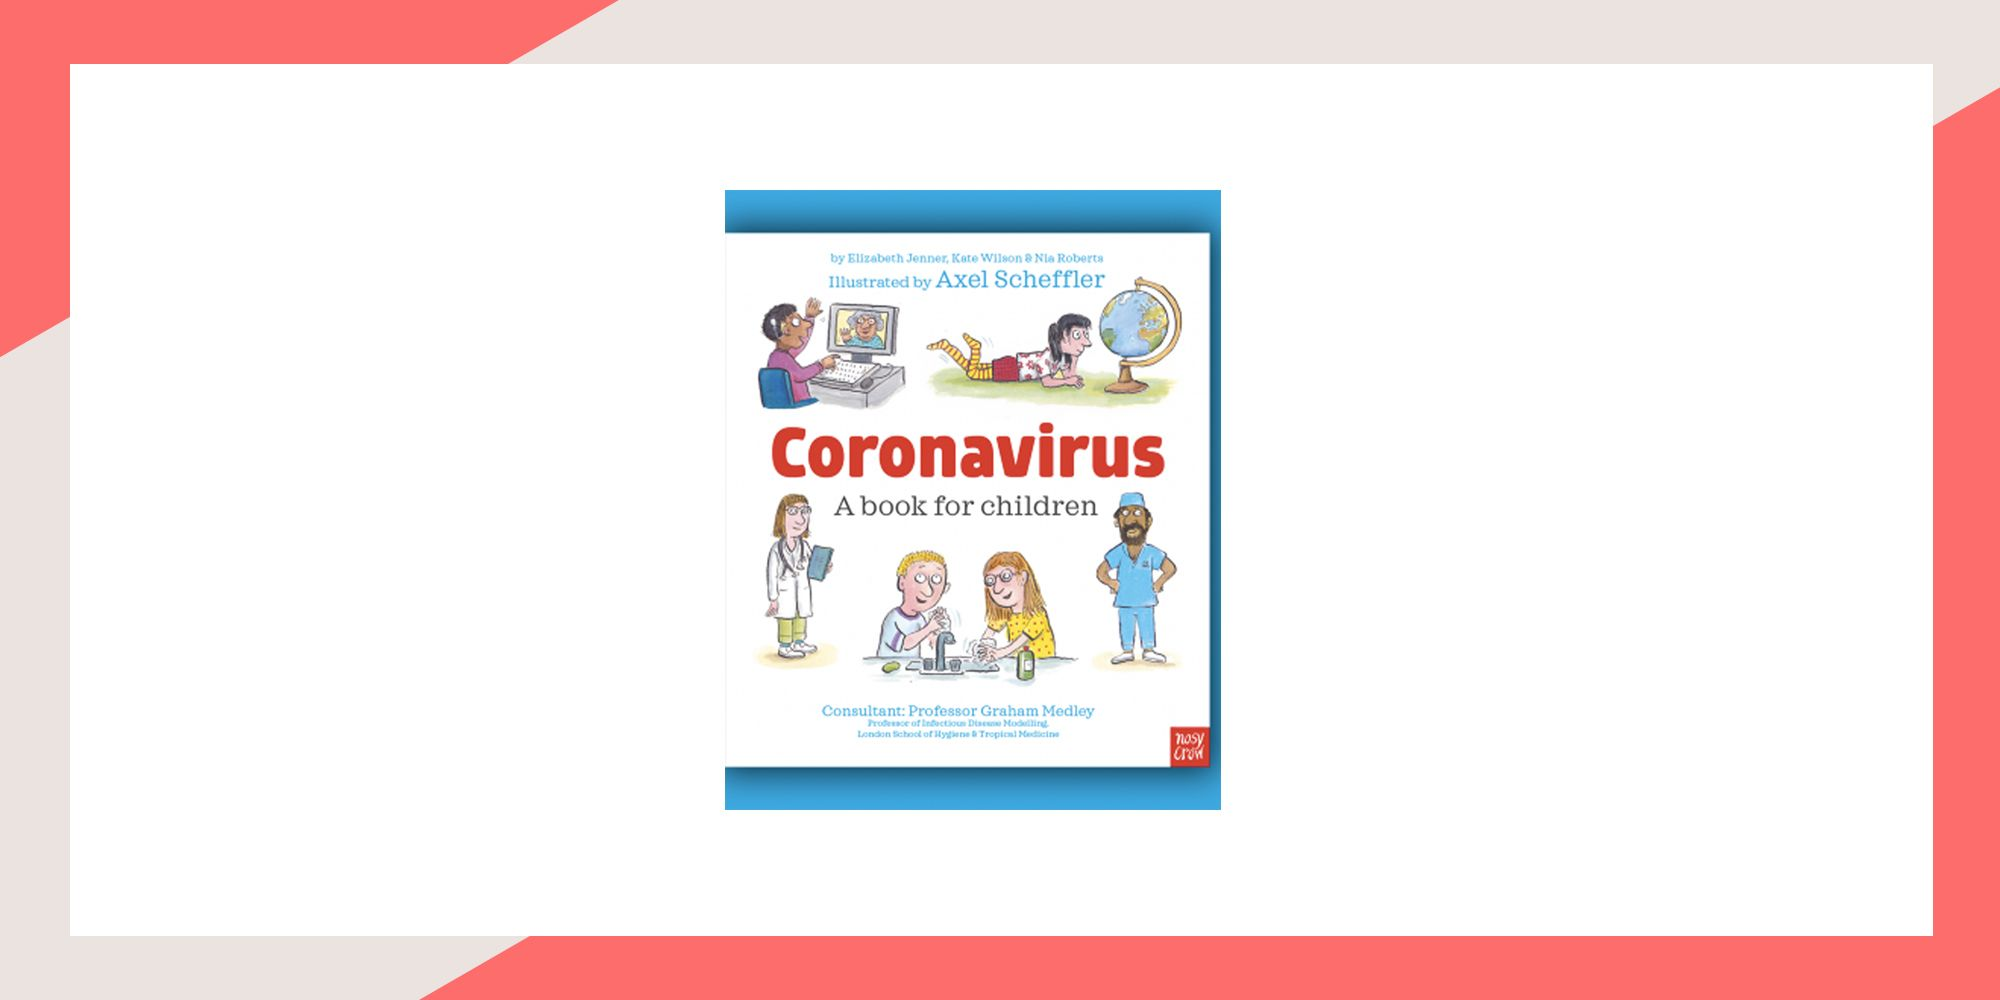 A free book to teach kids about coronavirus has been released